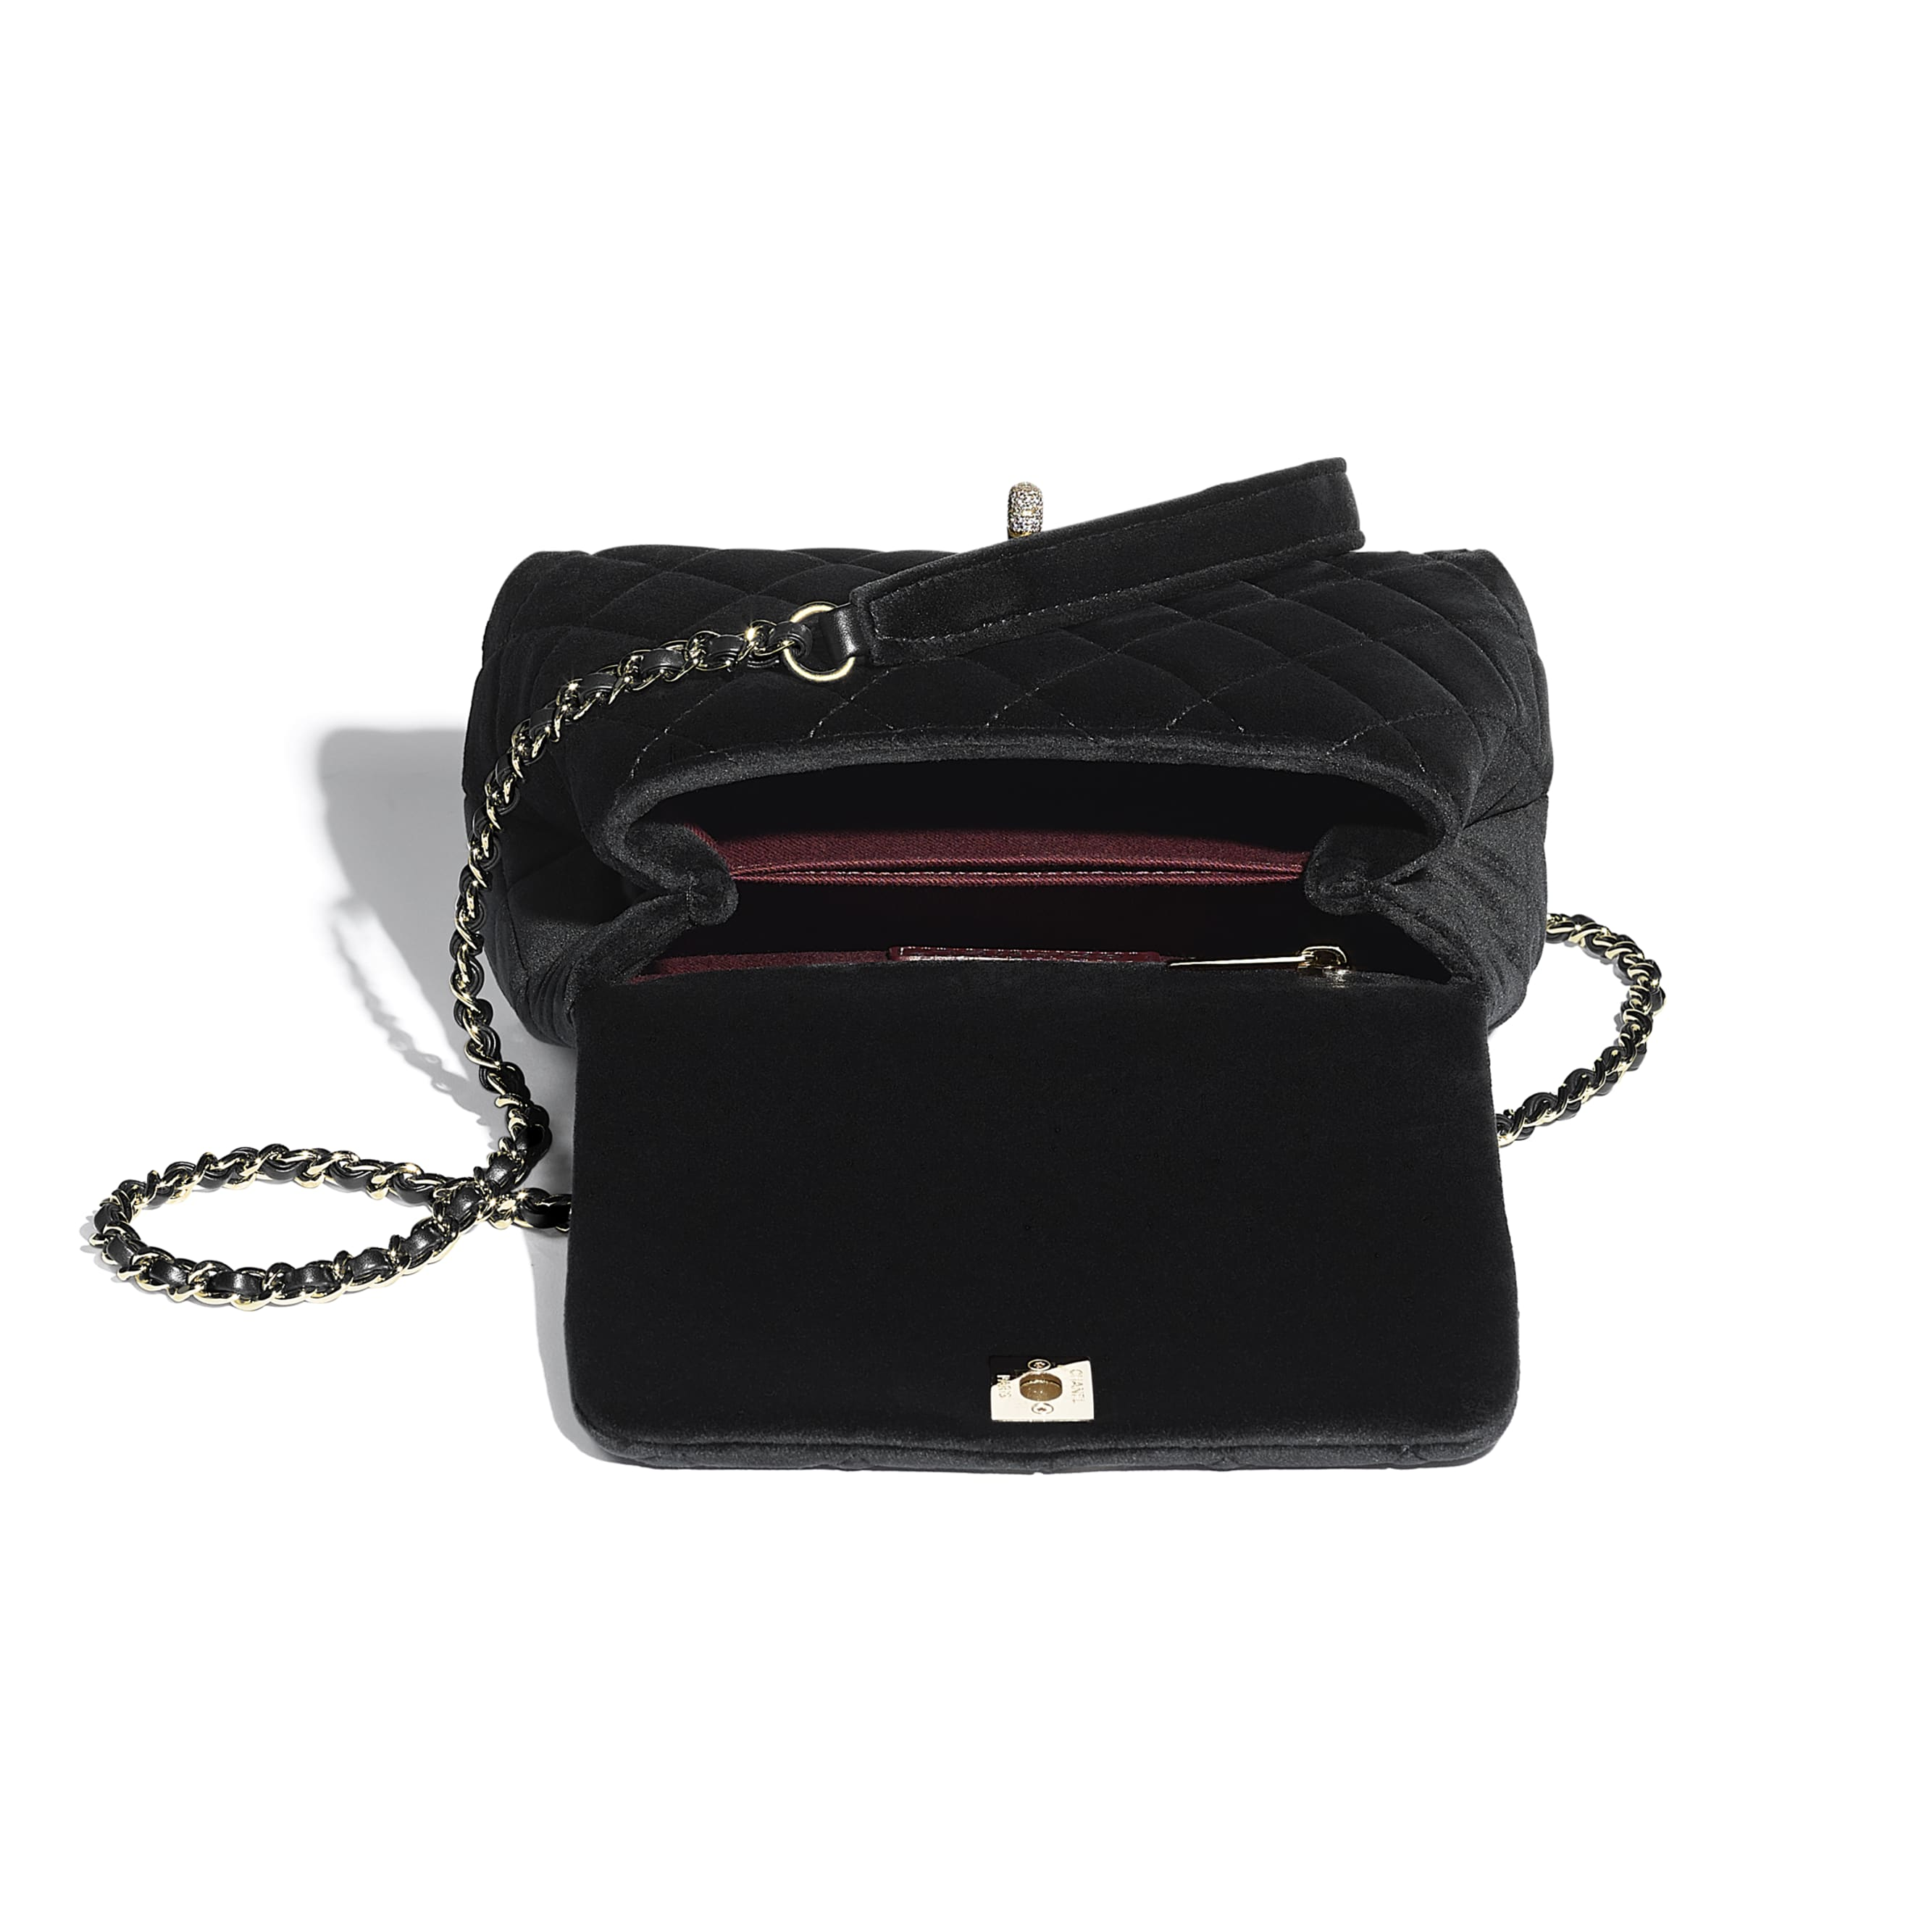 Mini Flap Bag with Top Handle - Black - Velvet, Diamanté & Gold-Tone Metal - CHANEL - Other view - see standard sized version